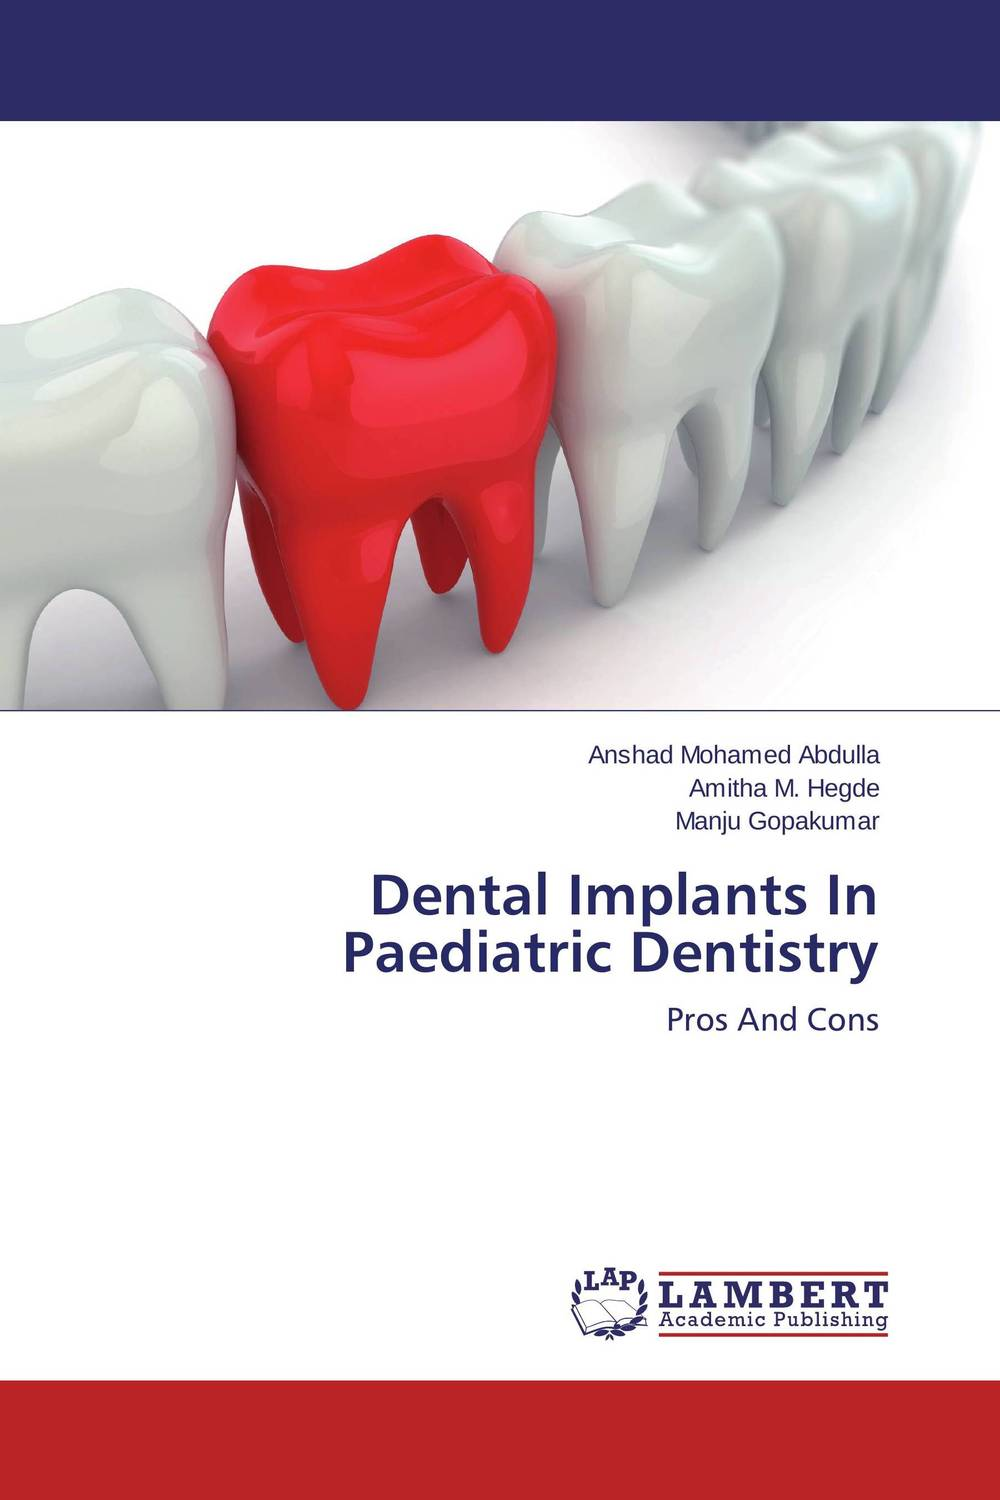 Dental Implants In Paediatric Dentistry karanprakash singh ramanpreet kaur bhullar and sumit kochhar forensic dentistry teeth and their secrets